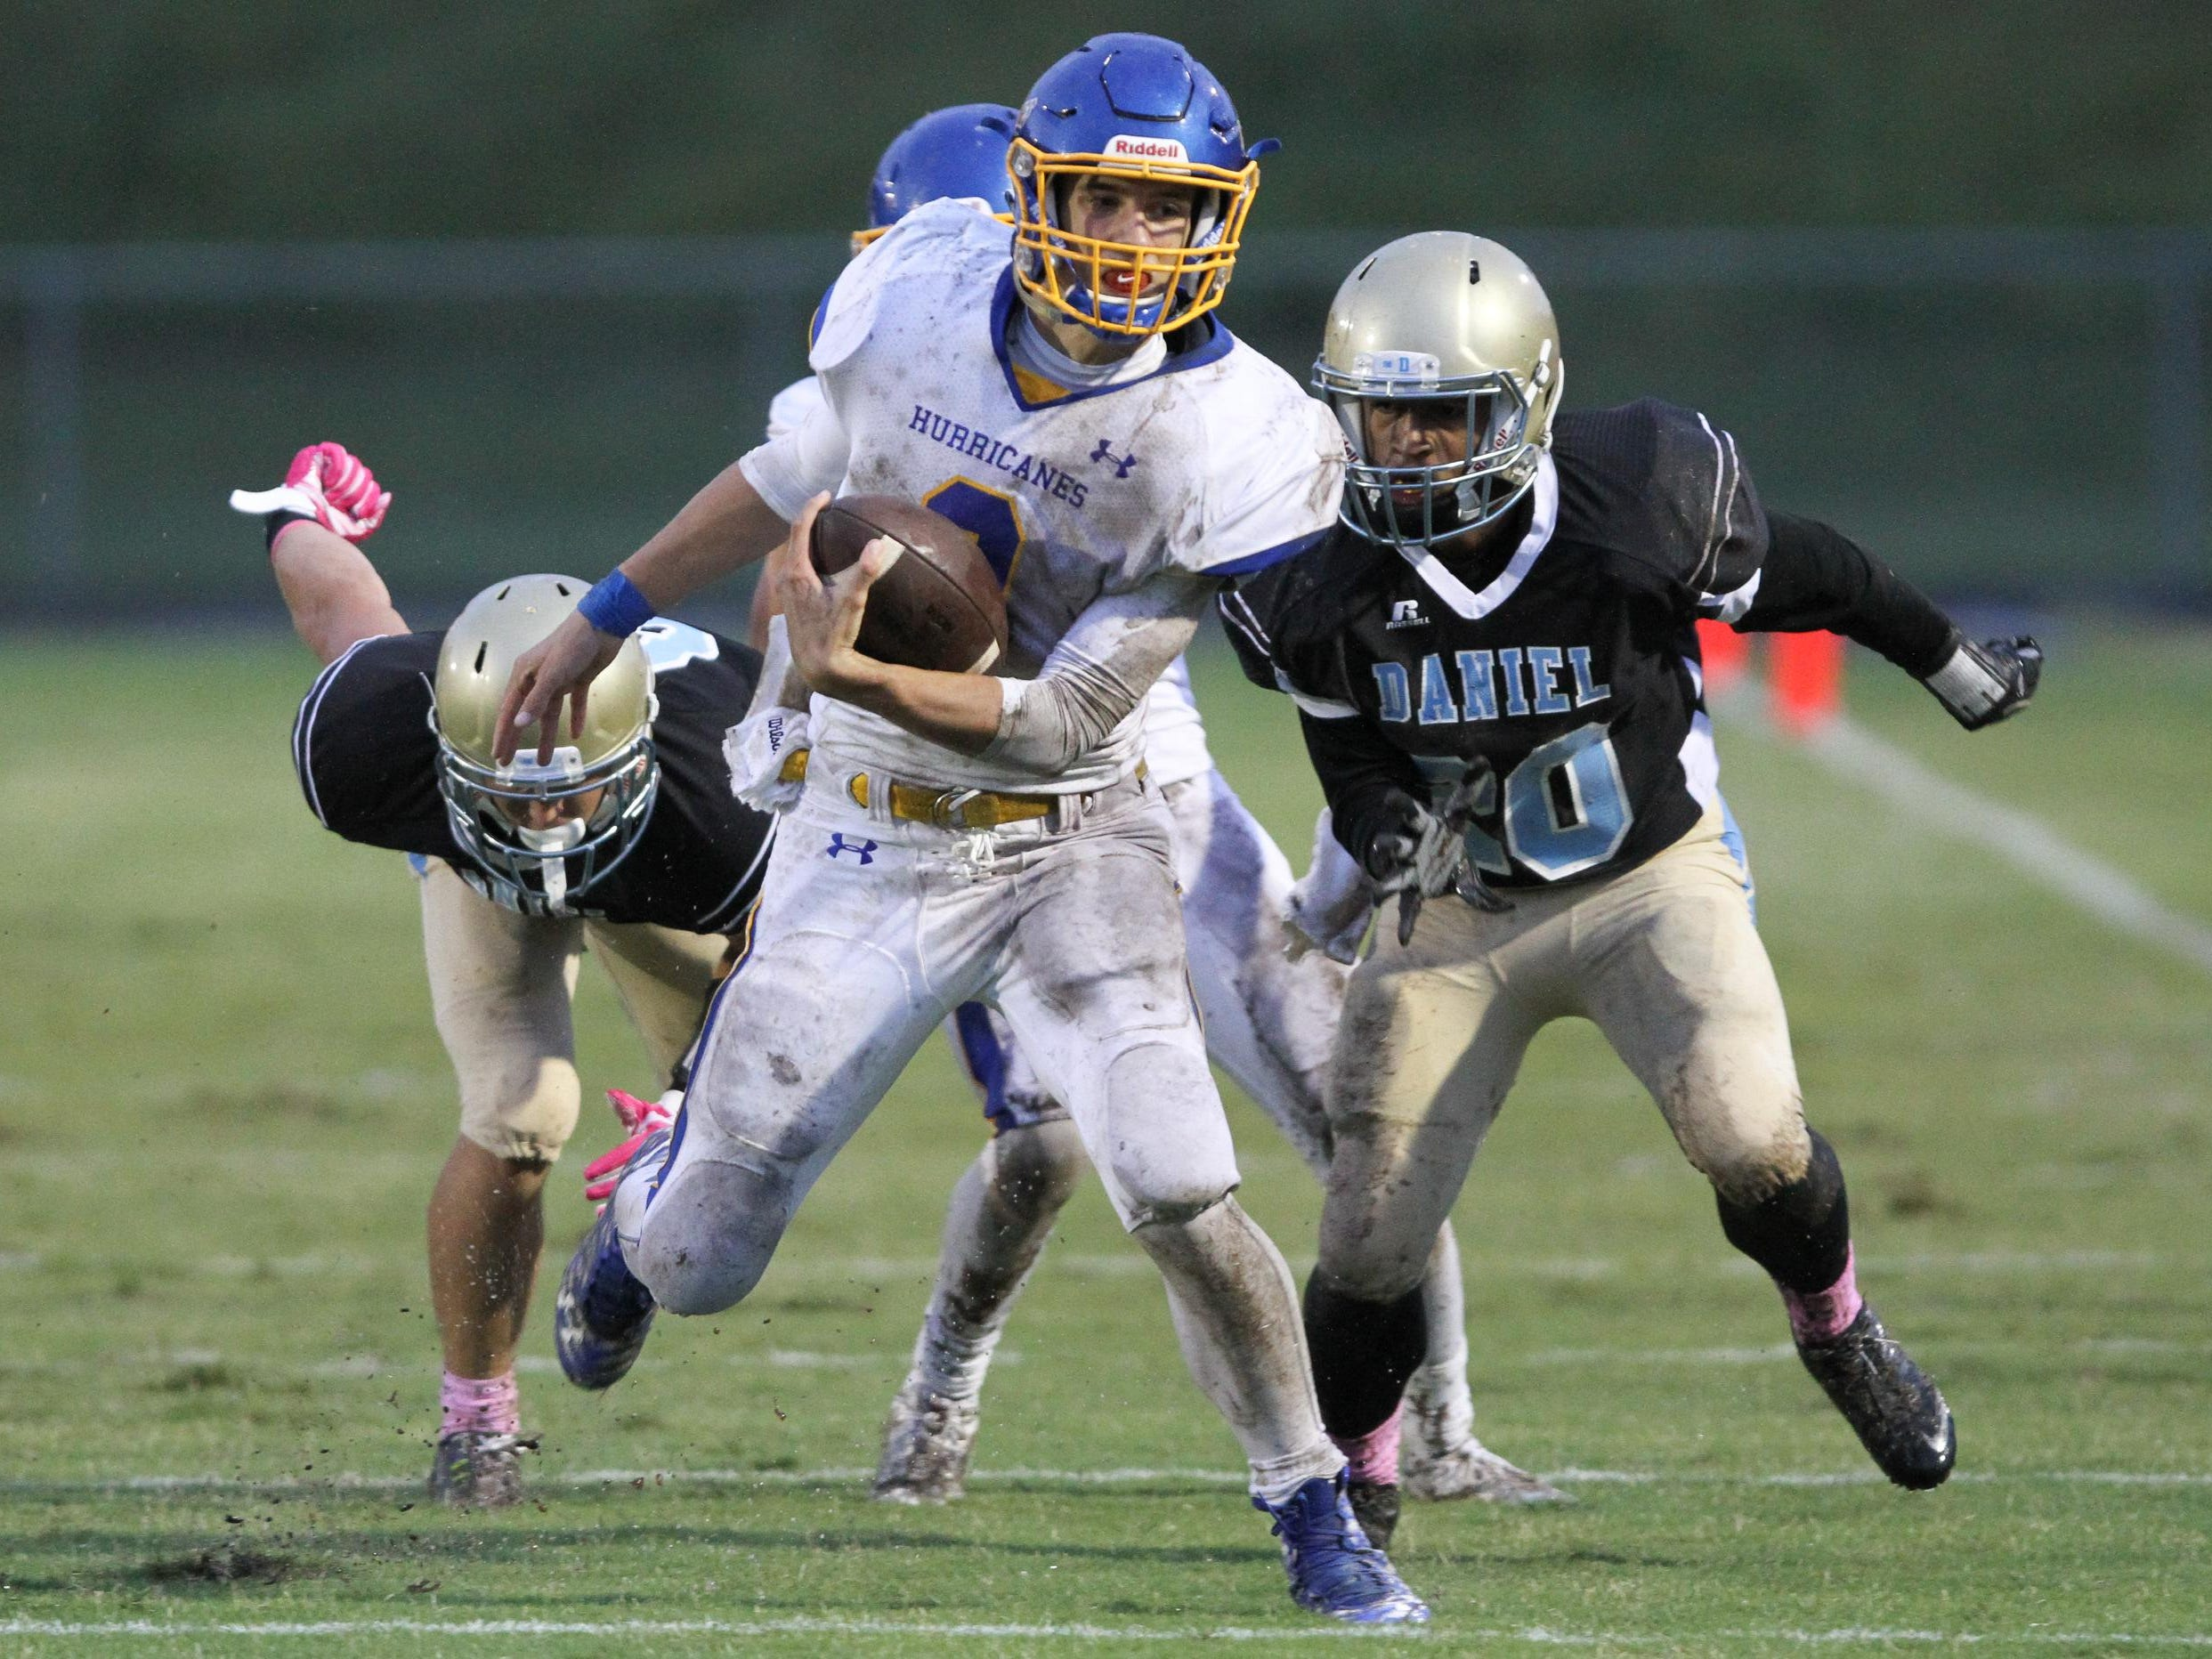 Wren quarterback Jay Urich (3) rushes for a touchdown against host Daniel on Friday night.